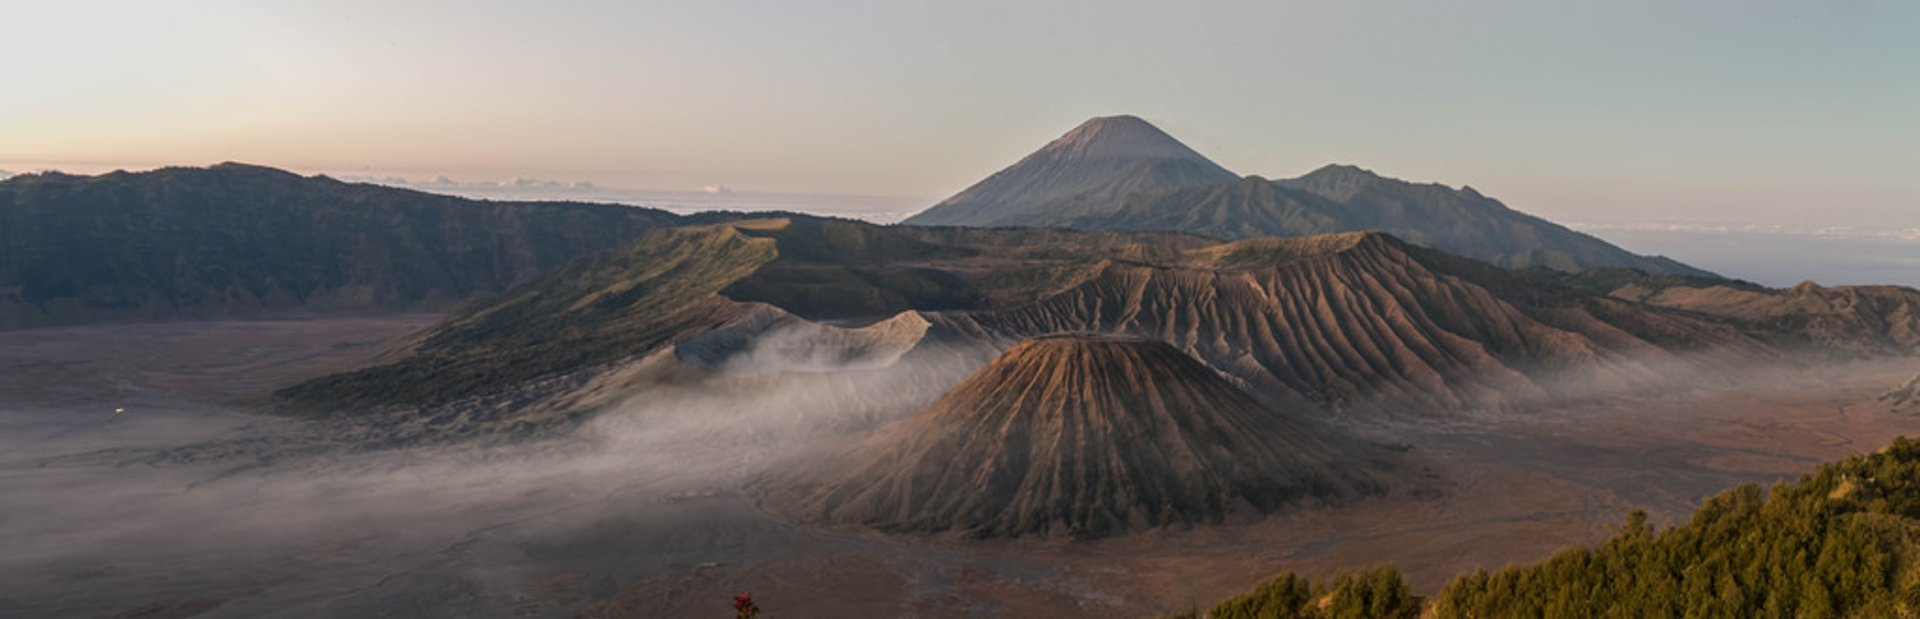 Mount Bromo in Java 2020 - Best Time